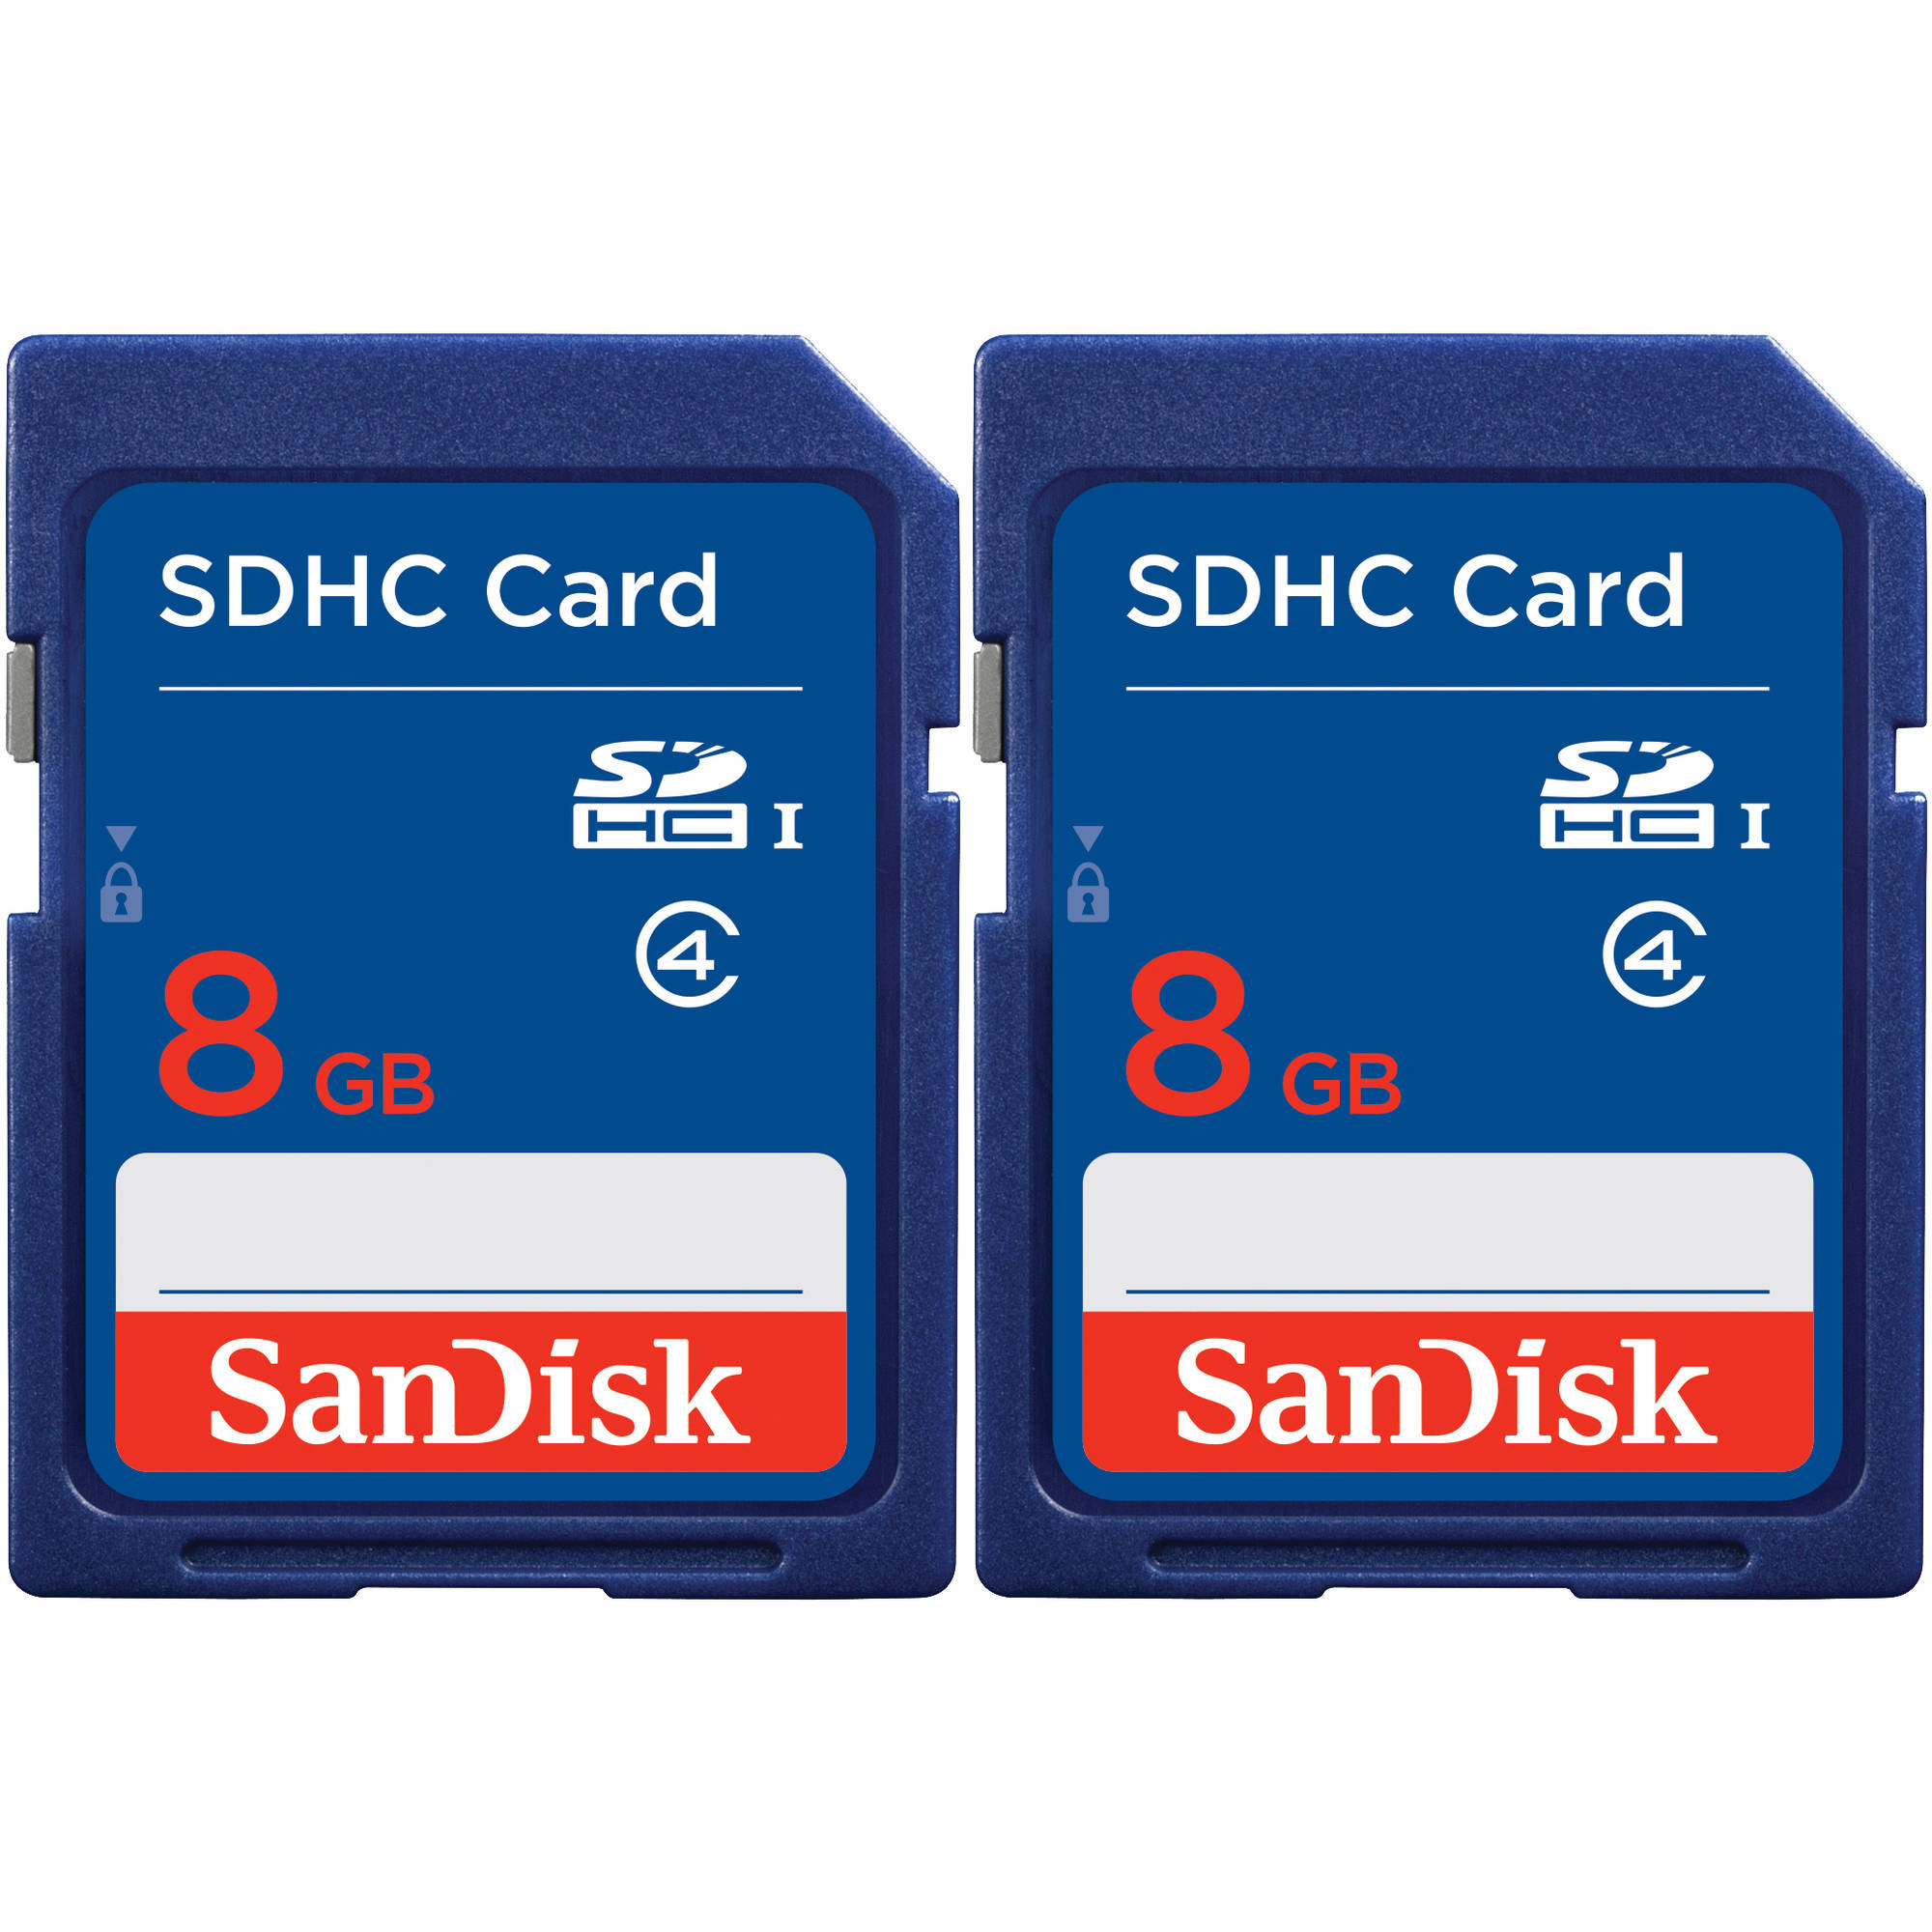 SanDisk SDHC 8GB Class 4 Memory Card, 2-Pack